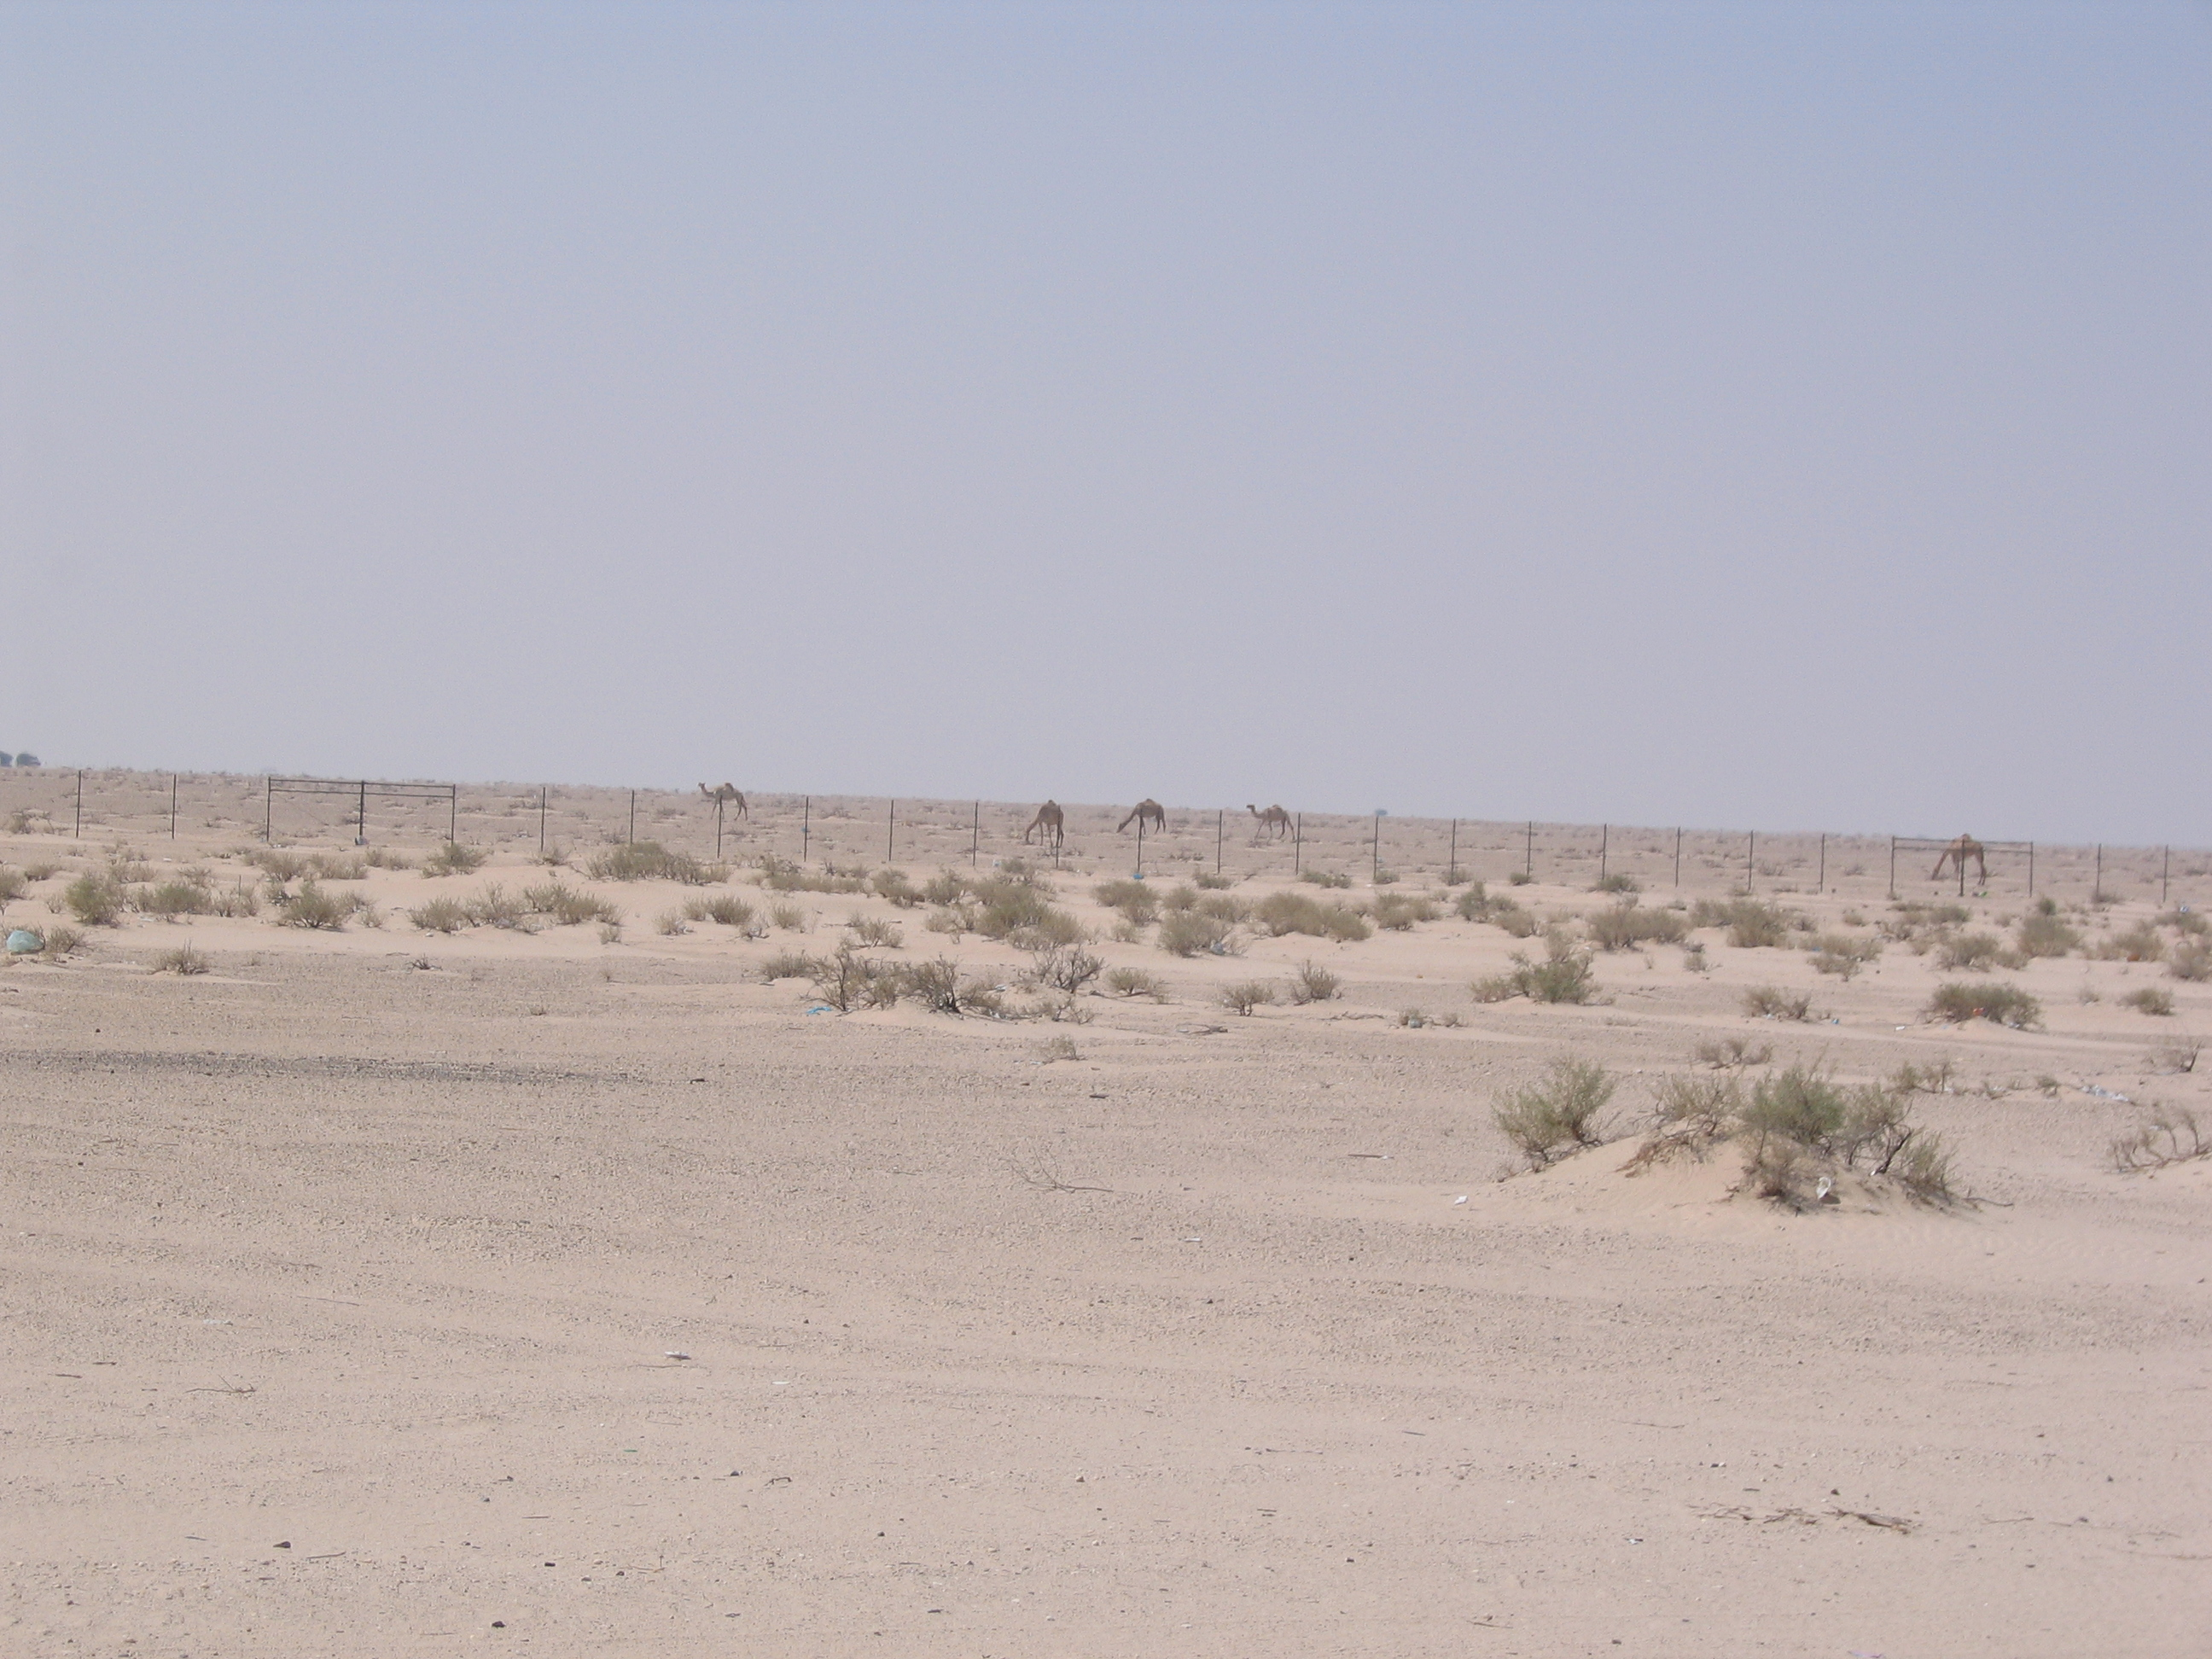 siteseeing 003.jpg - Camels in the dessert